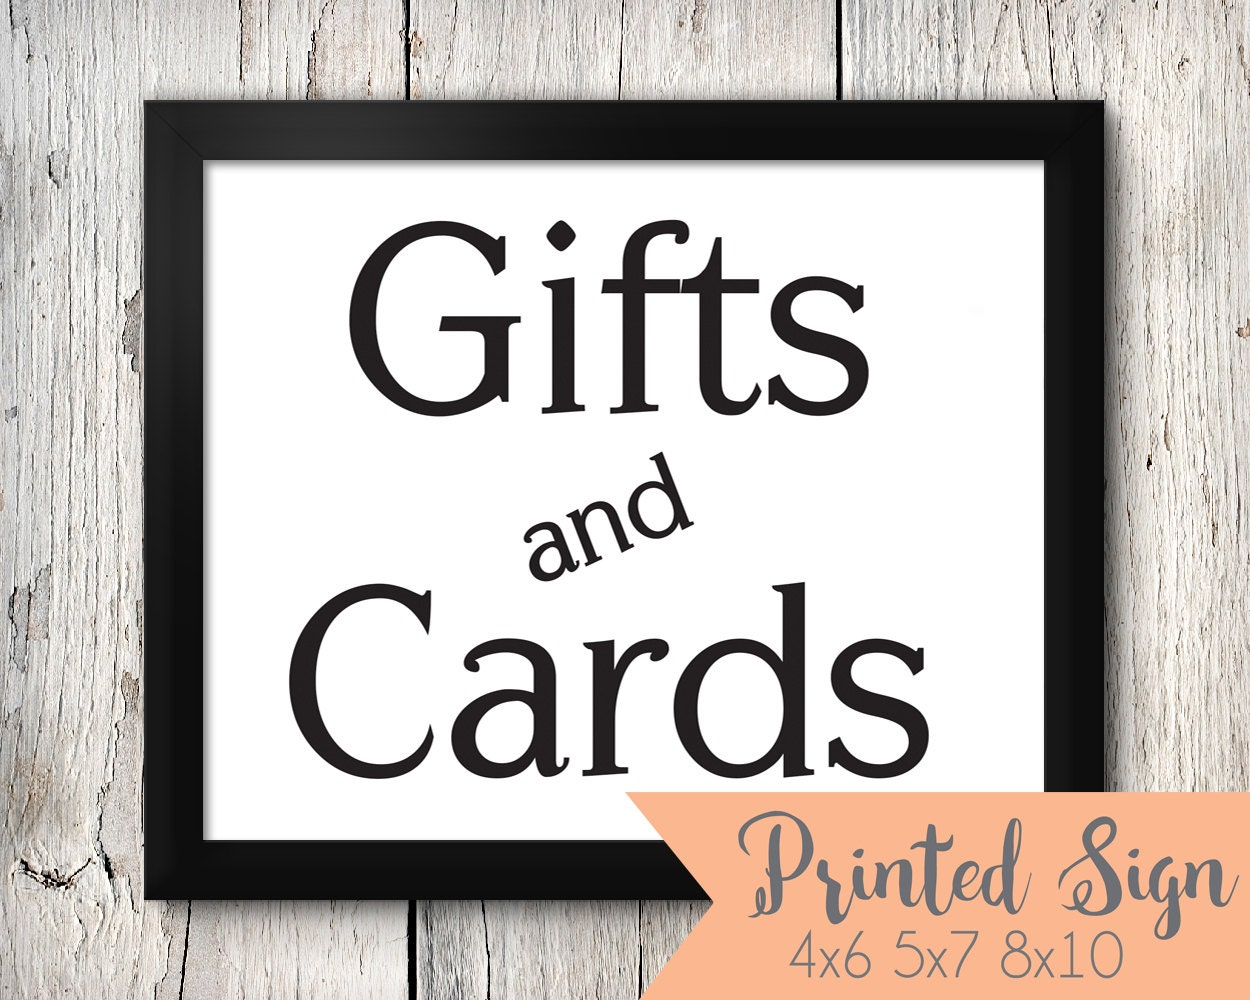 Cards And Gifts Sign, Cards & Gifts Sign, Cards and Gift Sign, Card and Gifts Sign, Cards Sign, Gift Sign, Wedding Sign, Wedding Signs WeddingSigns99CENT. 5 out of 5 stars (1,) $ Eligible orders get 20% off Favorite Add to See similar items +.